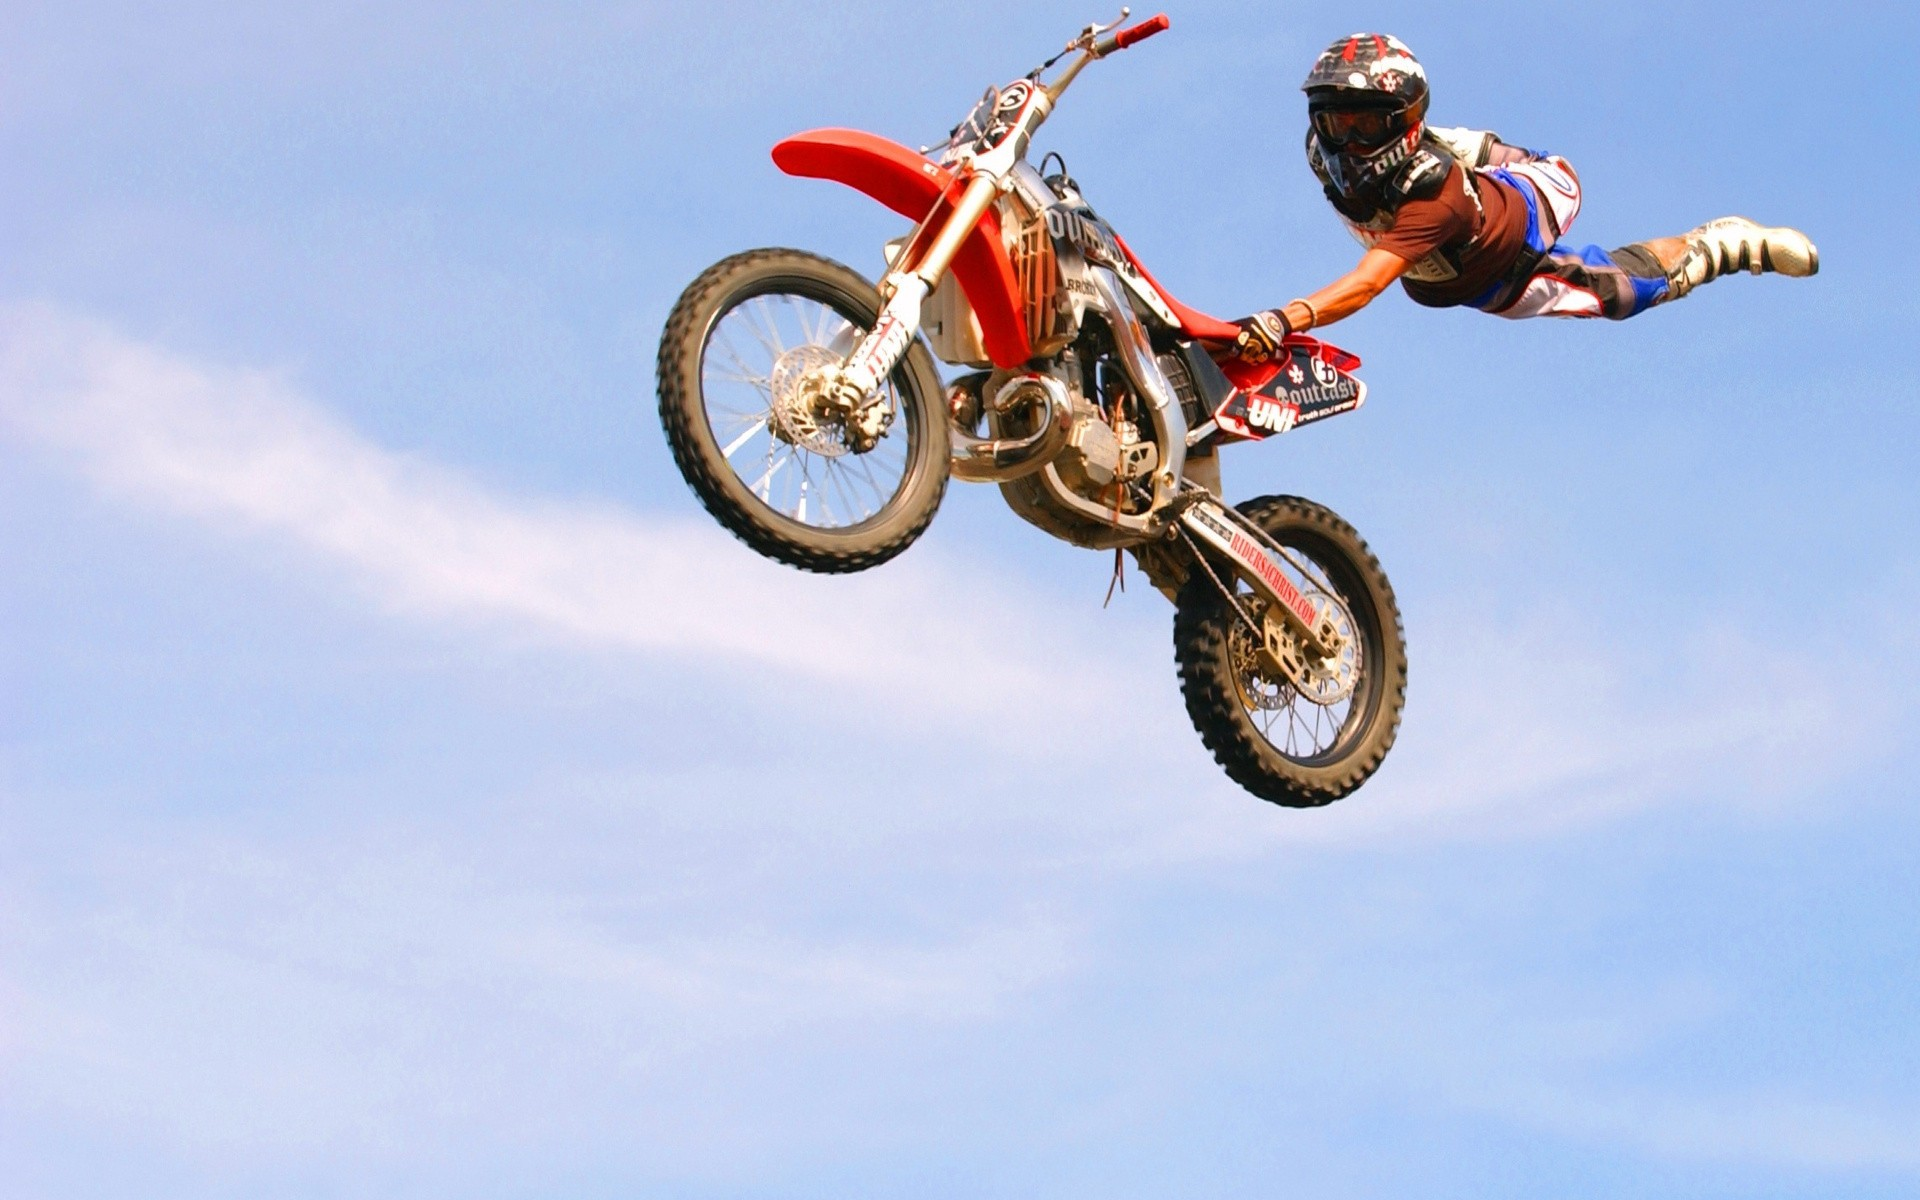 Motocross Wall Murals Stunt Bike Wallpaper Wallpapersafari